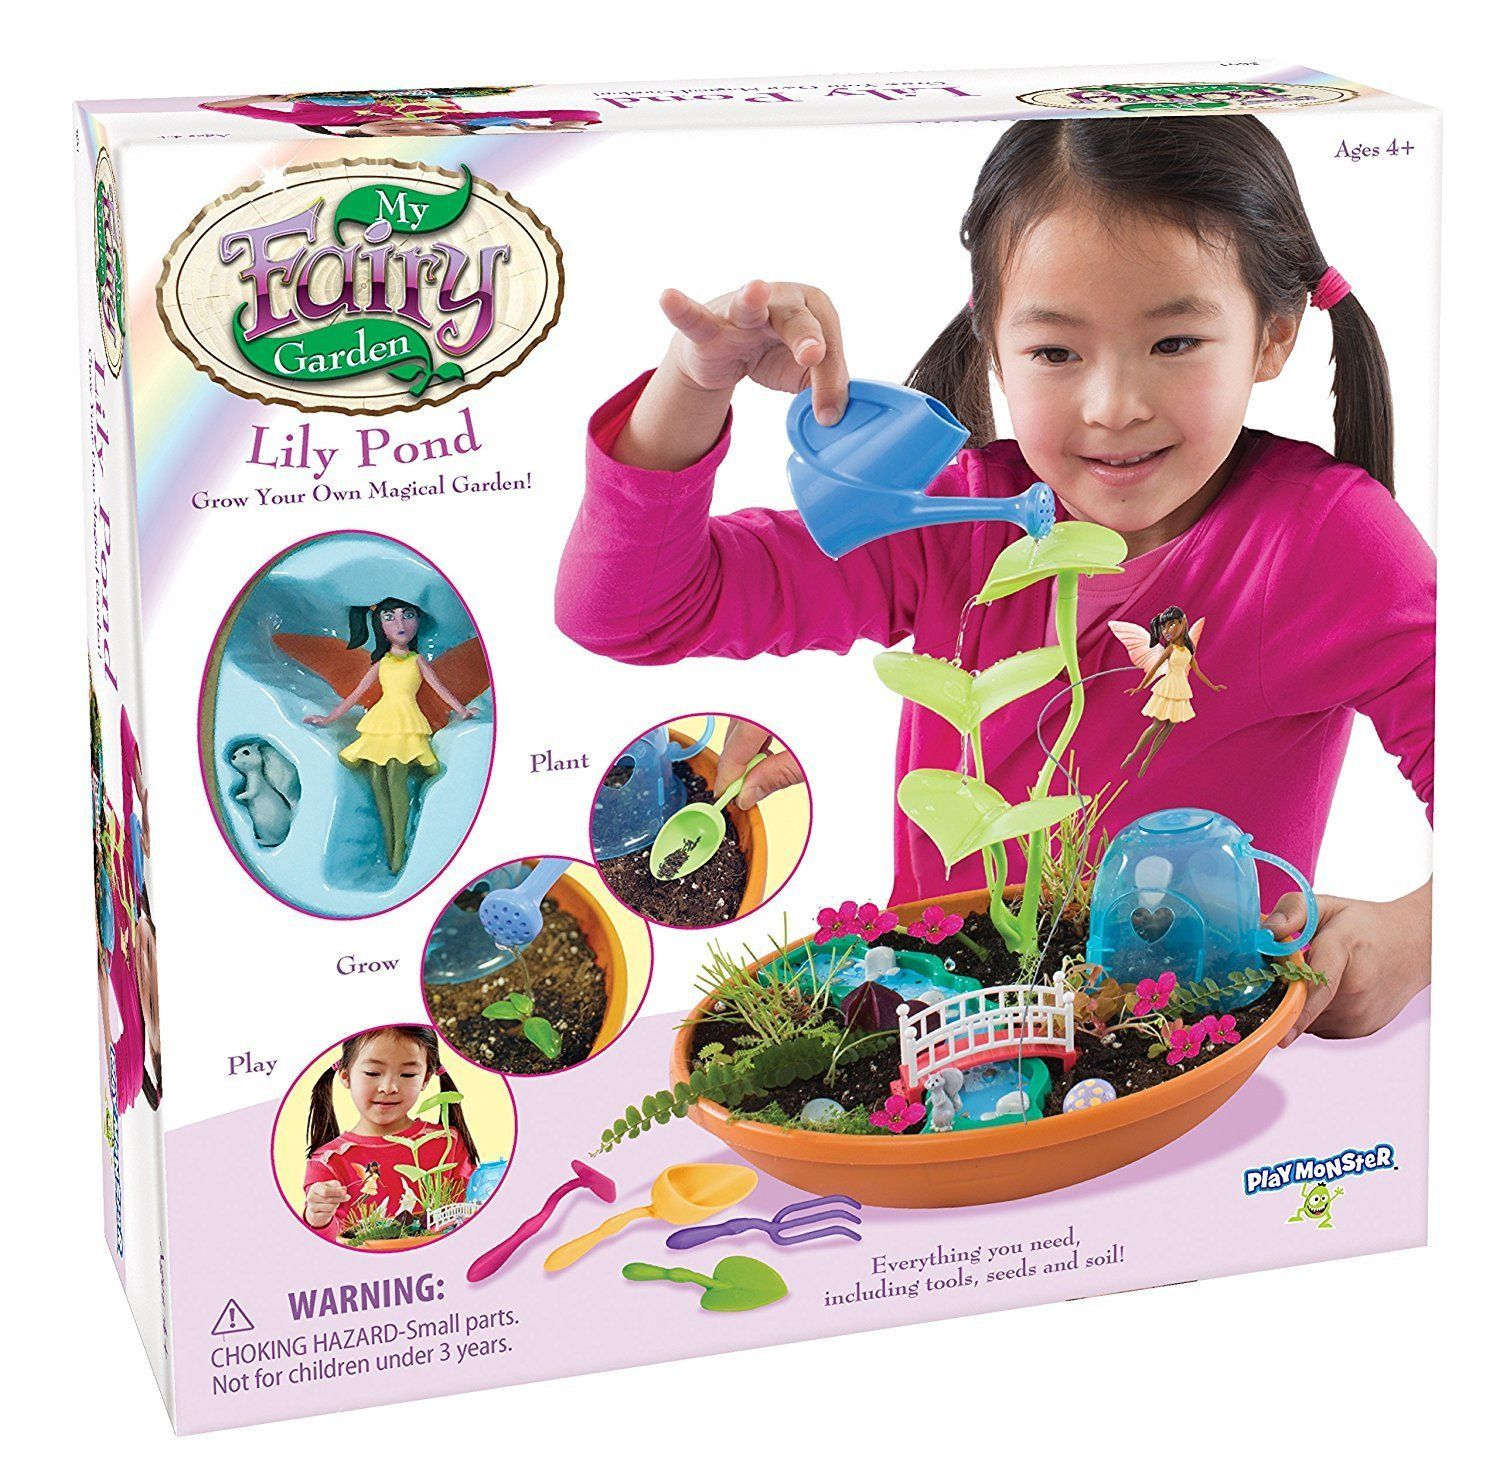 My Fairy Garden Lily Pond Toy [New] PlayMonster Toys